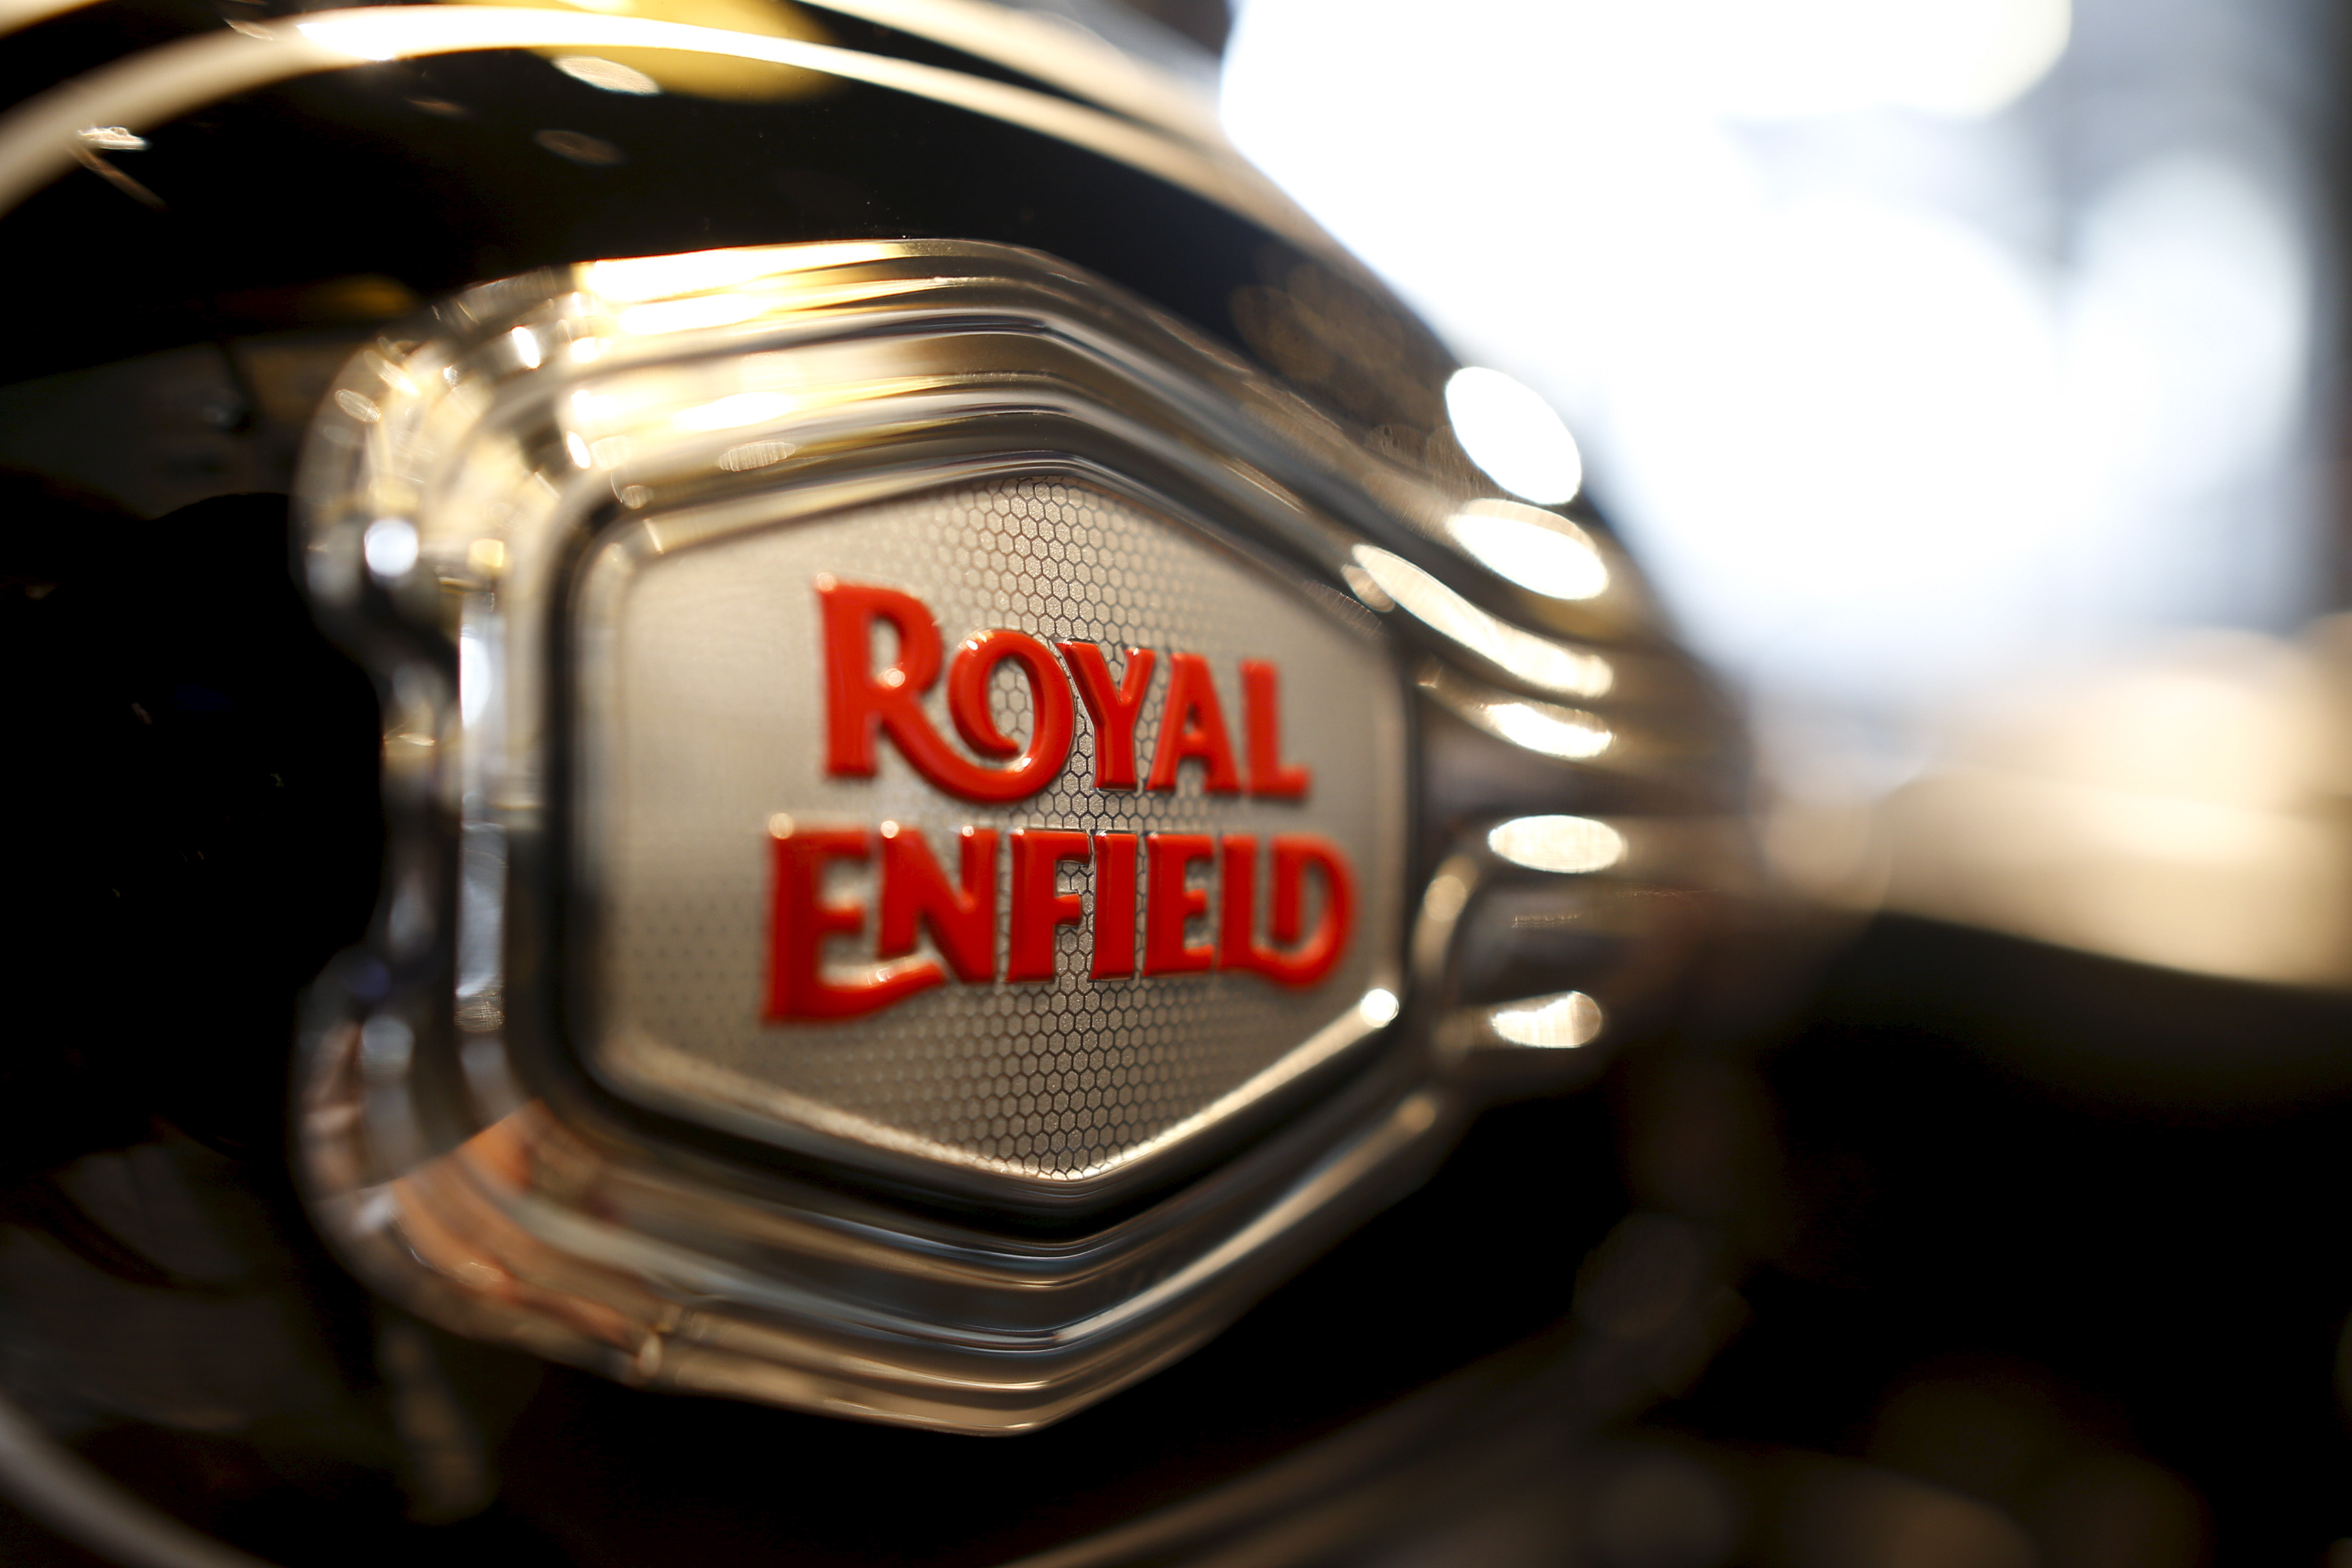 The logo of Royal Enfield is pictured on a bike at Royal Enfield's flagship shore in Bangkok, Thailand, February 24, 2016. REUTERS/Athit Perawongmetha